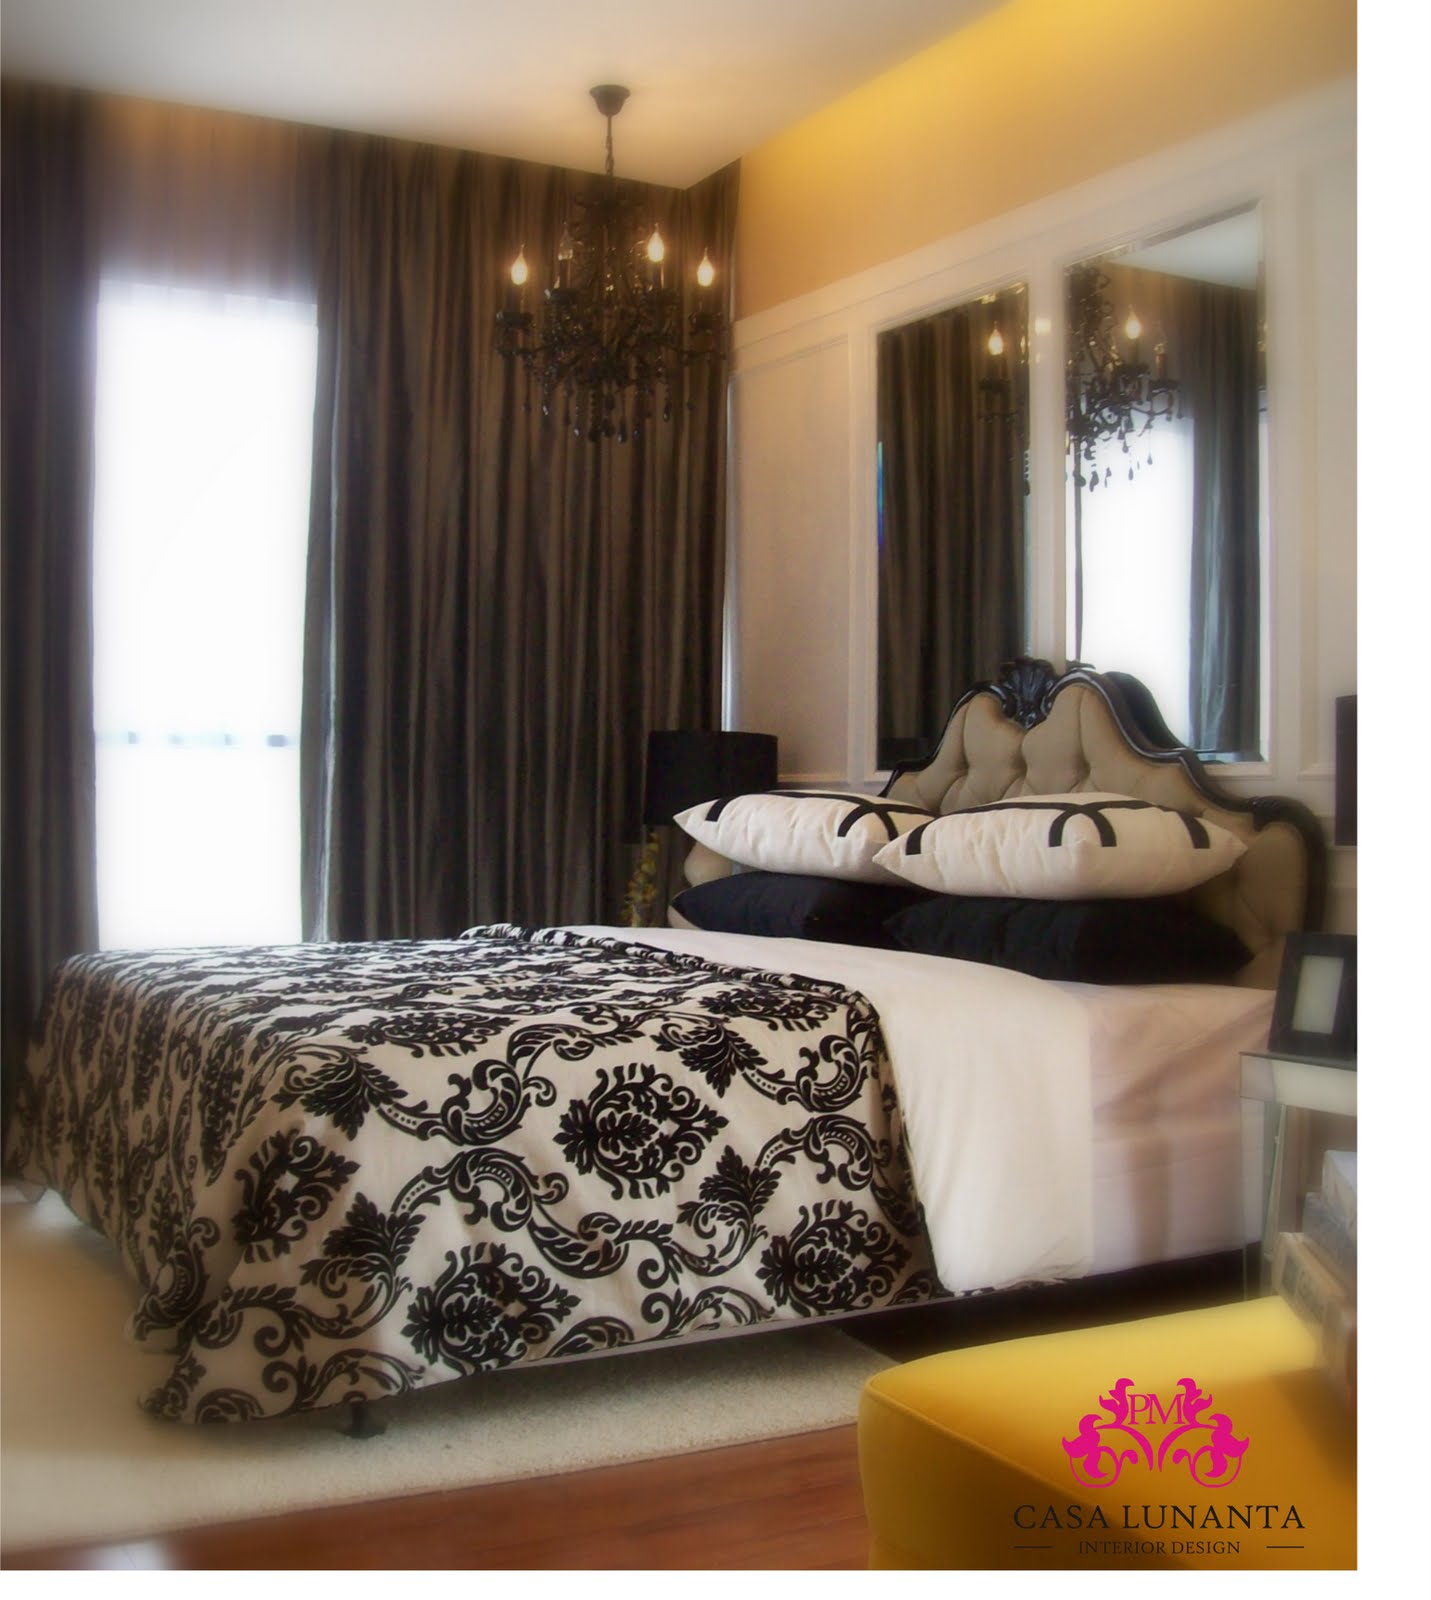 welcome to casa lunanta interior design transitional black white bedroom with damask accent. Black Bedroom Furniture Sets. Home Design Ideas